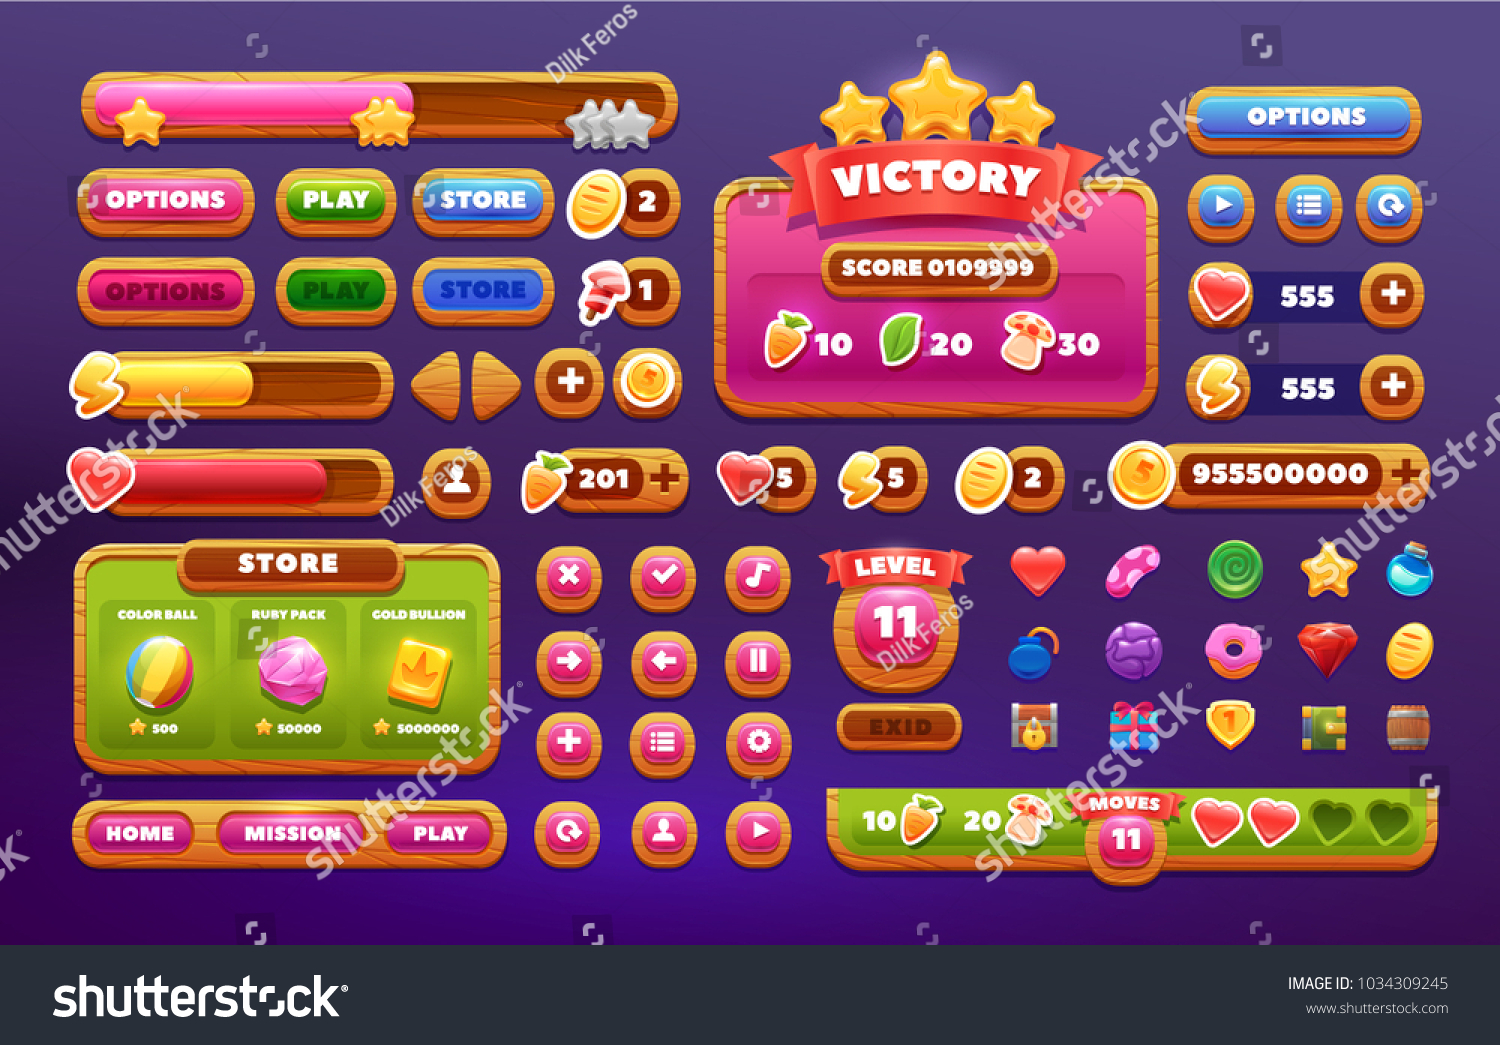 Fashion Match 3 Mobile Game Glossy UI Design Game UI Design UI